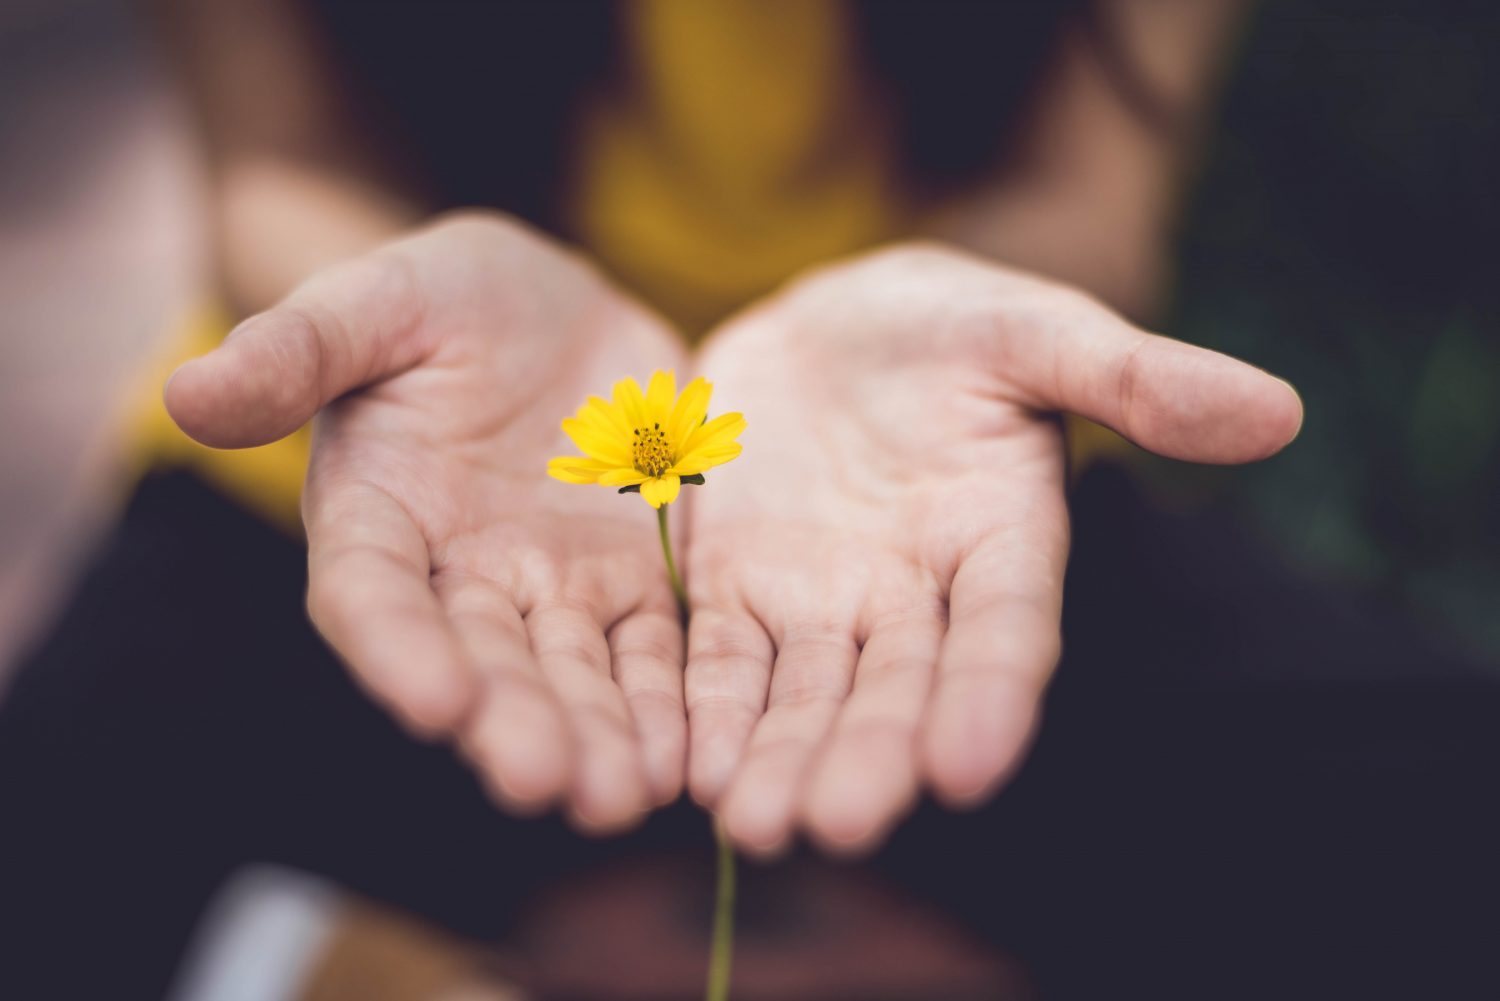 Hands together holding a daisy